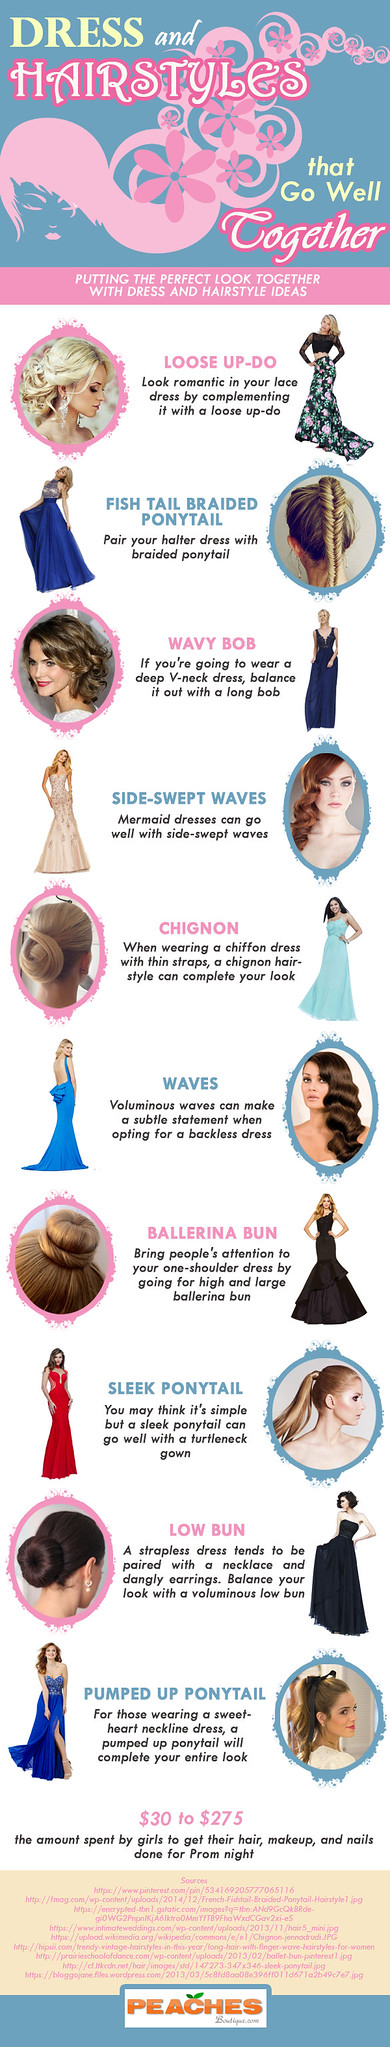 DRESS AND HAIRSTYLES THAT GO WELL TOGETHER